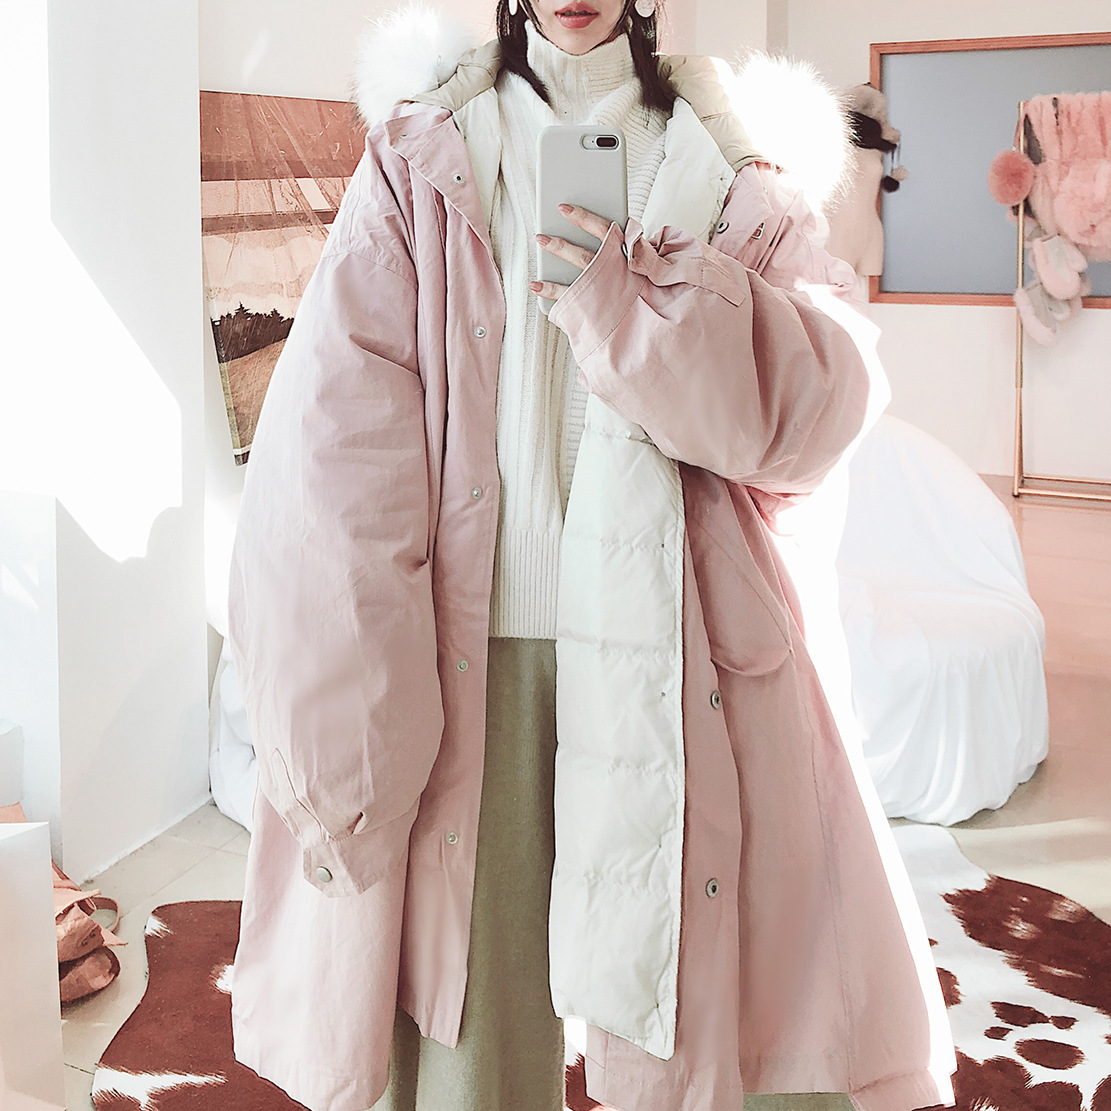 New 2020 Wome's Winter Down Jacket Luxury Natural Raccoon Fur Coat Super Qaulity Long Parka Outwear Abrigo Mujer LX2414